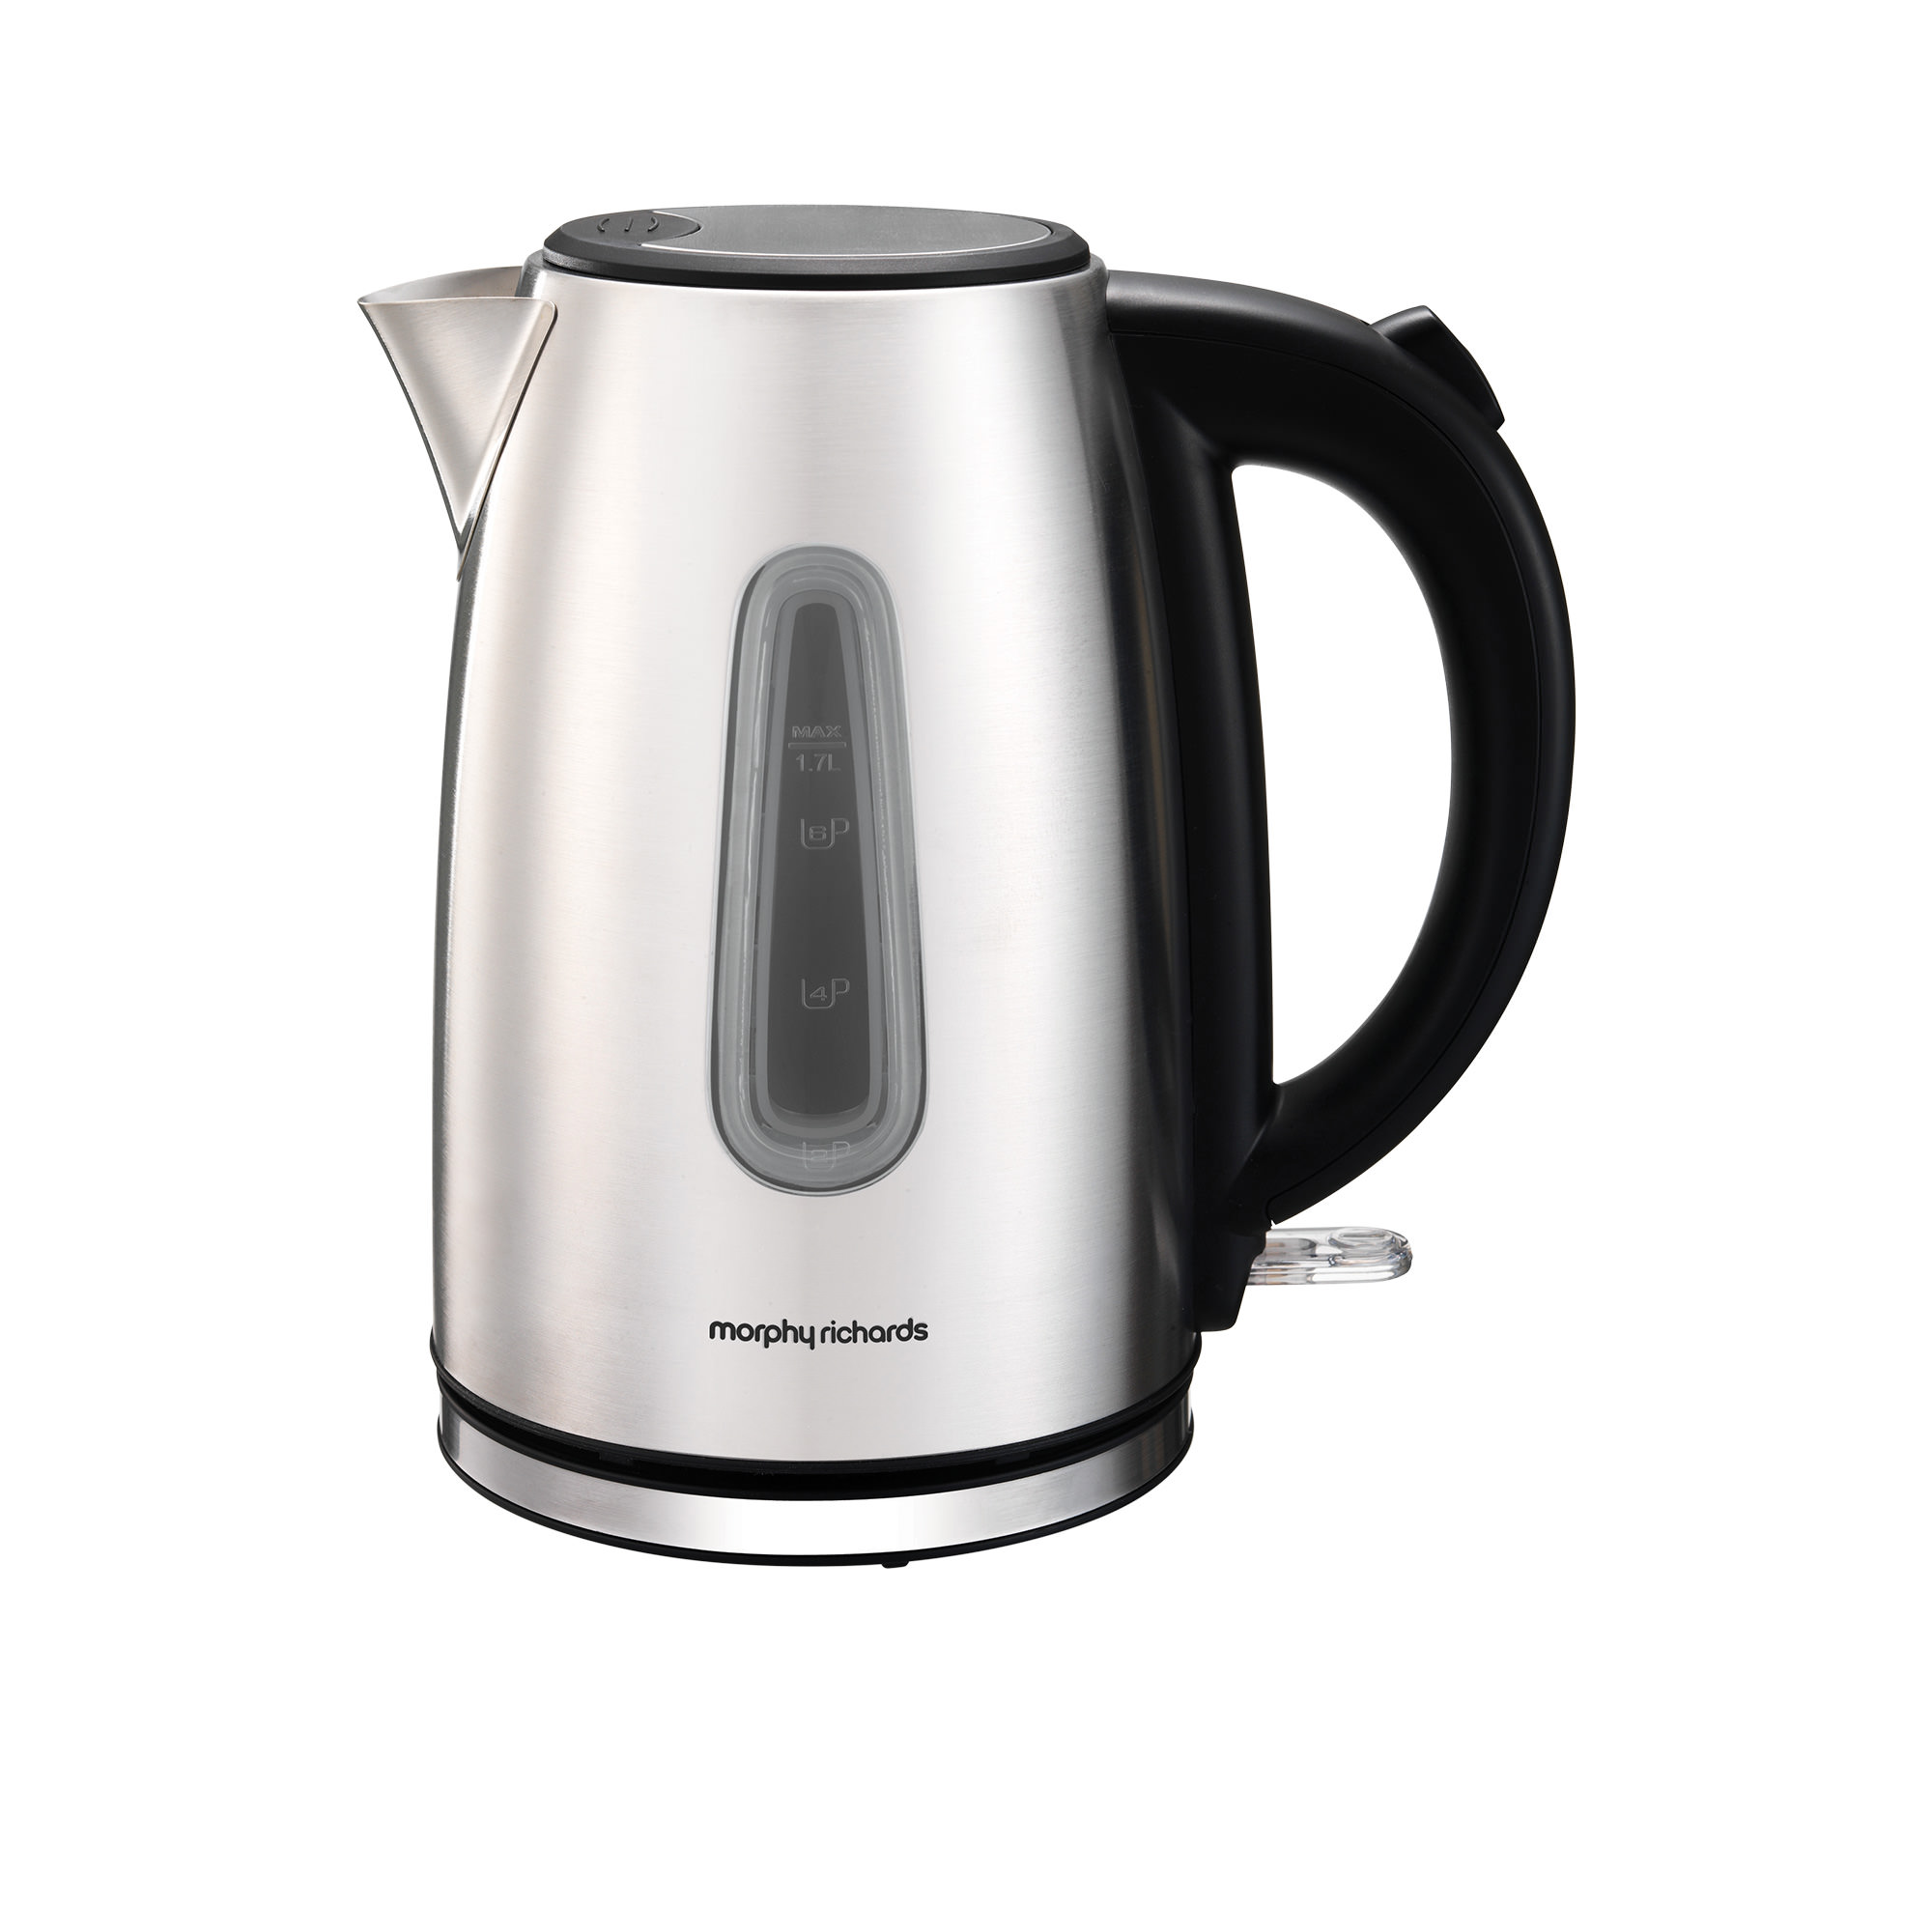 Morphy Richards Equip Jug Kettle 1.7L Stainless Steel